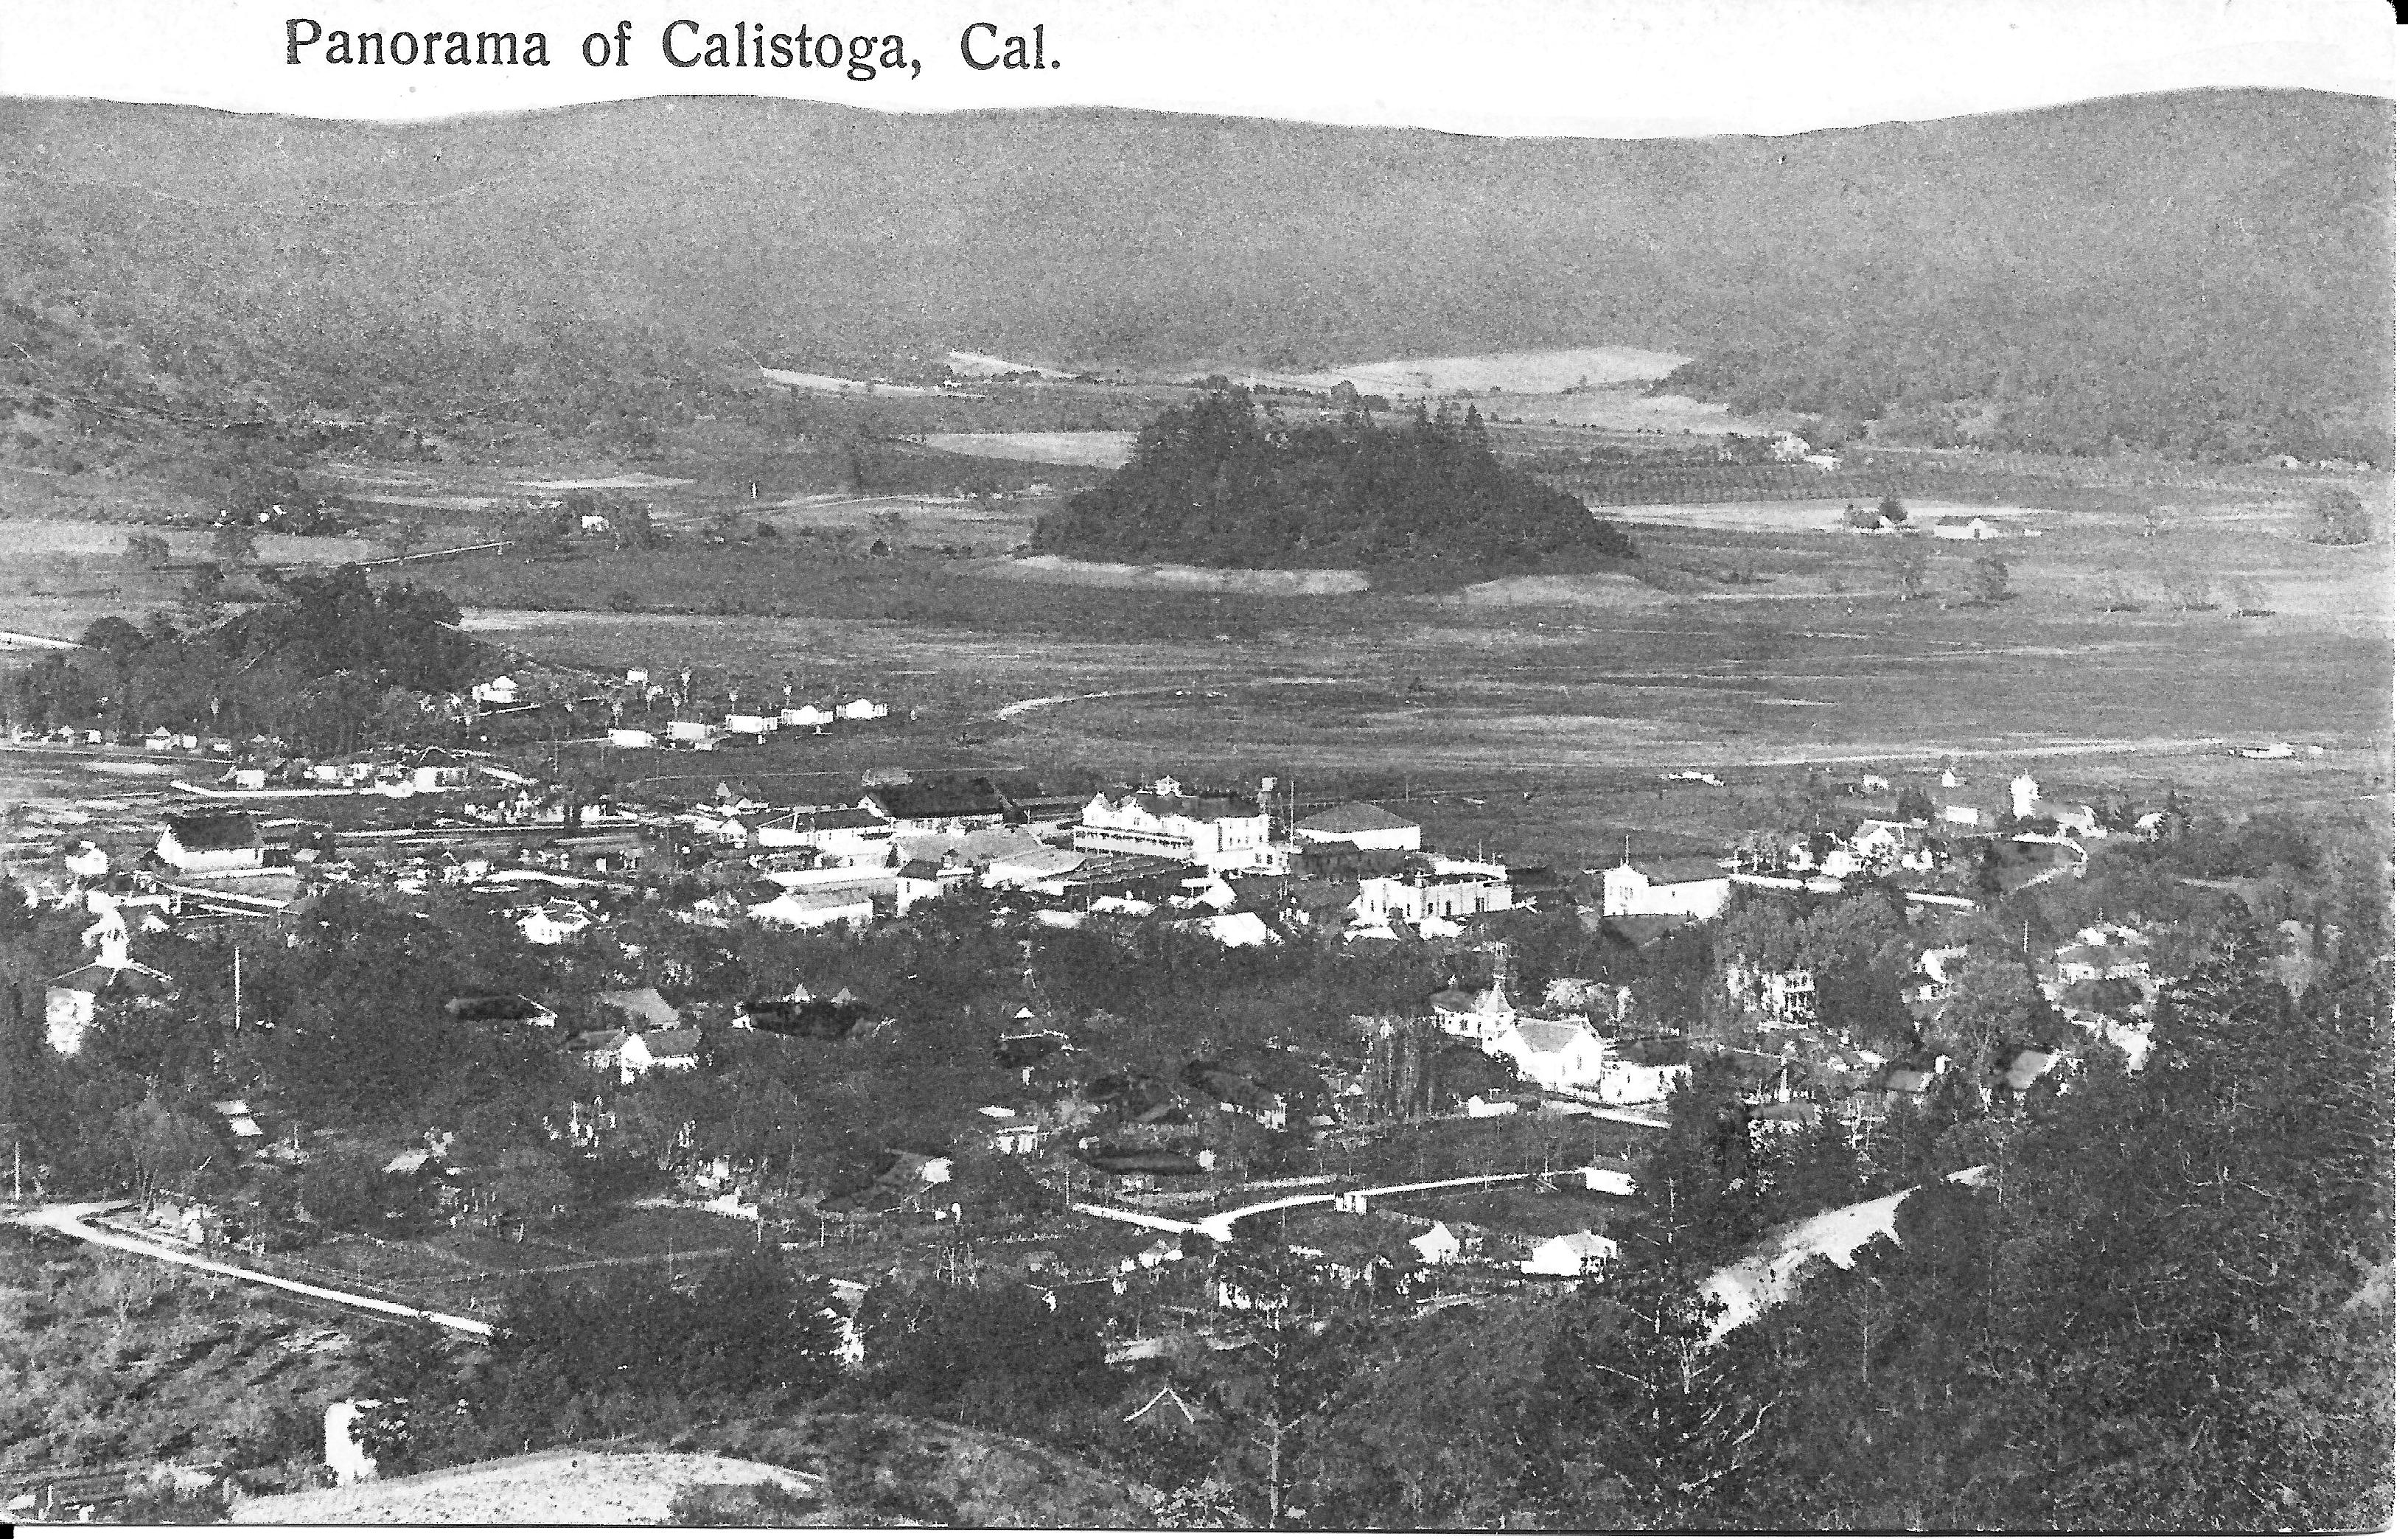 Calistoga Panorama